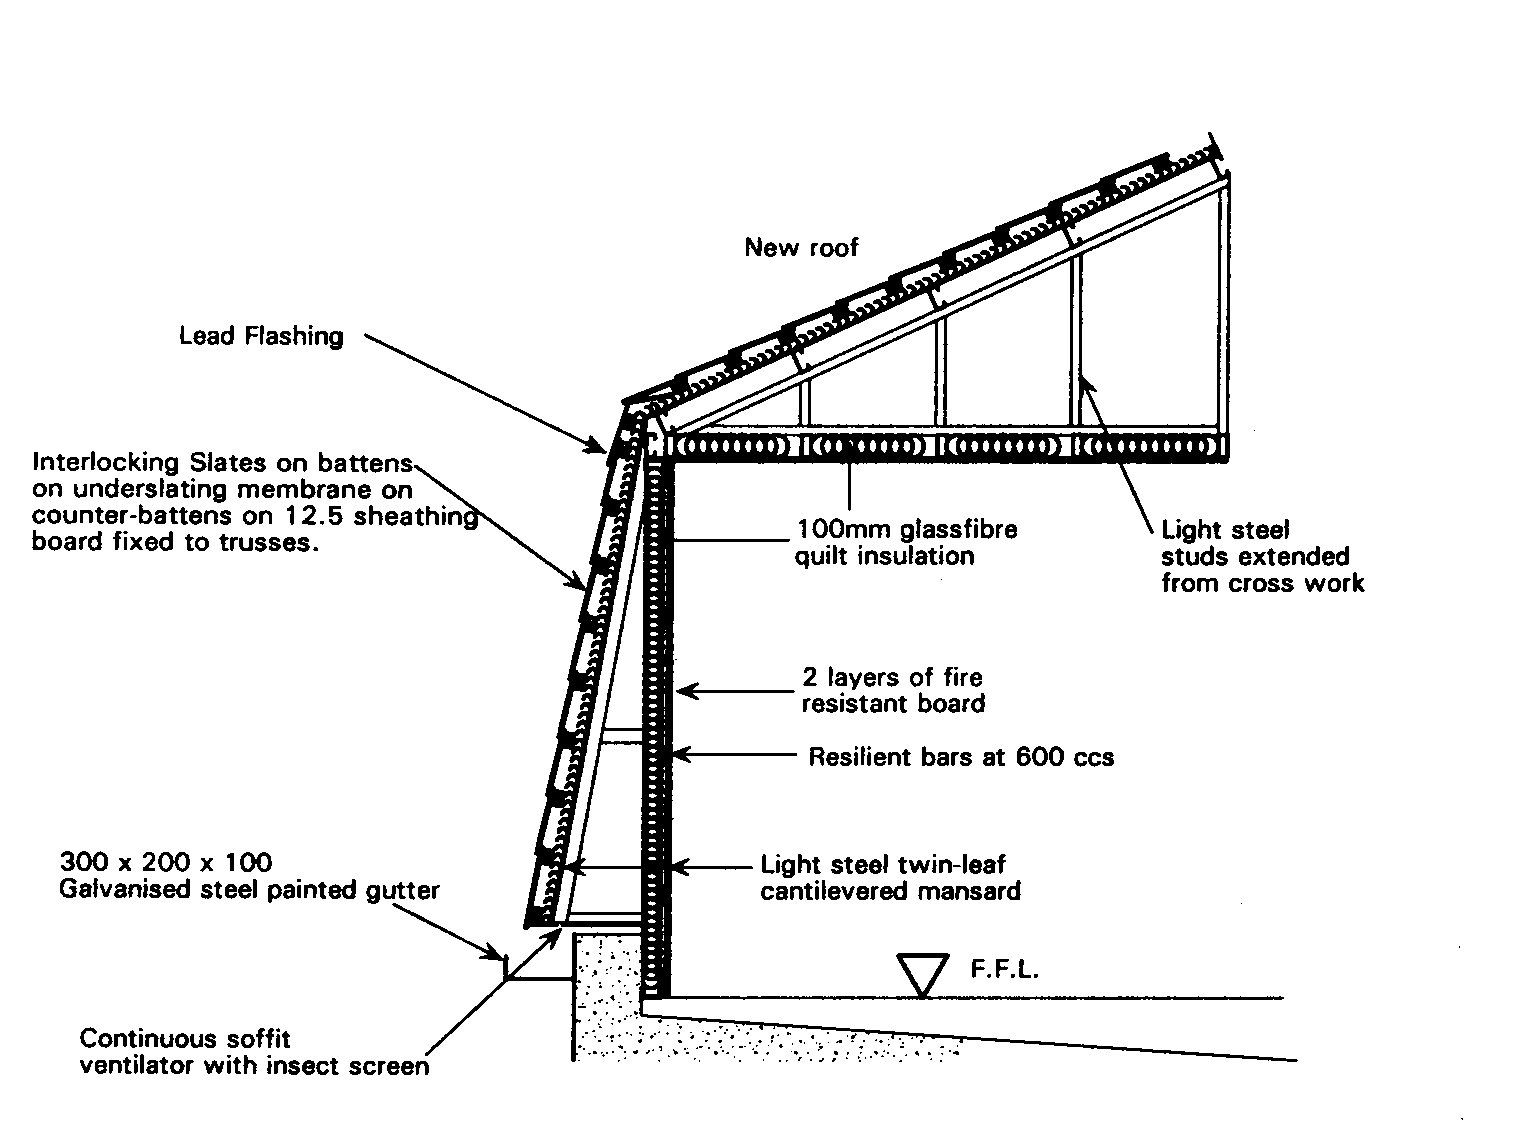 Wiring A Shed For Solar as well Gfci Wiring Diagram furthermore 18 Water Heater 110v Reading A Wiring Diagram For Appliance additionally Room Thermostat Wiring Diagram additionally Direct Heating Systems. on pole barn electrical wiring diagram